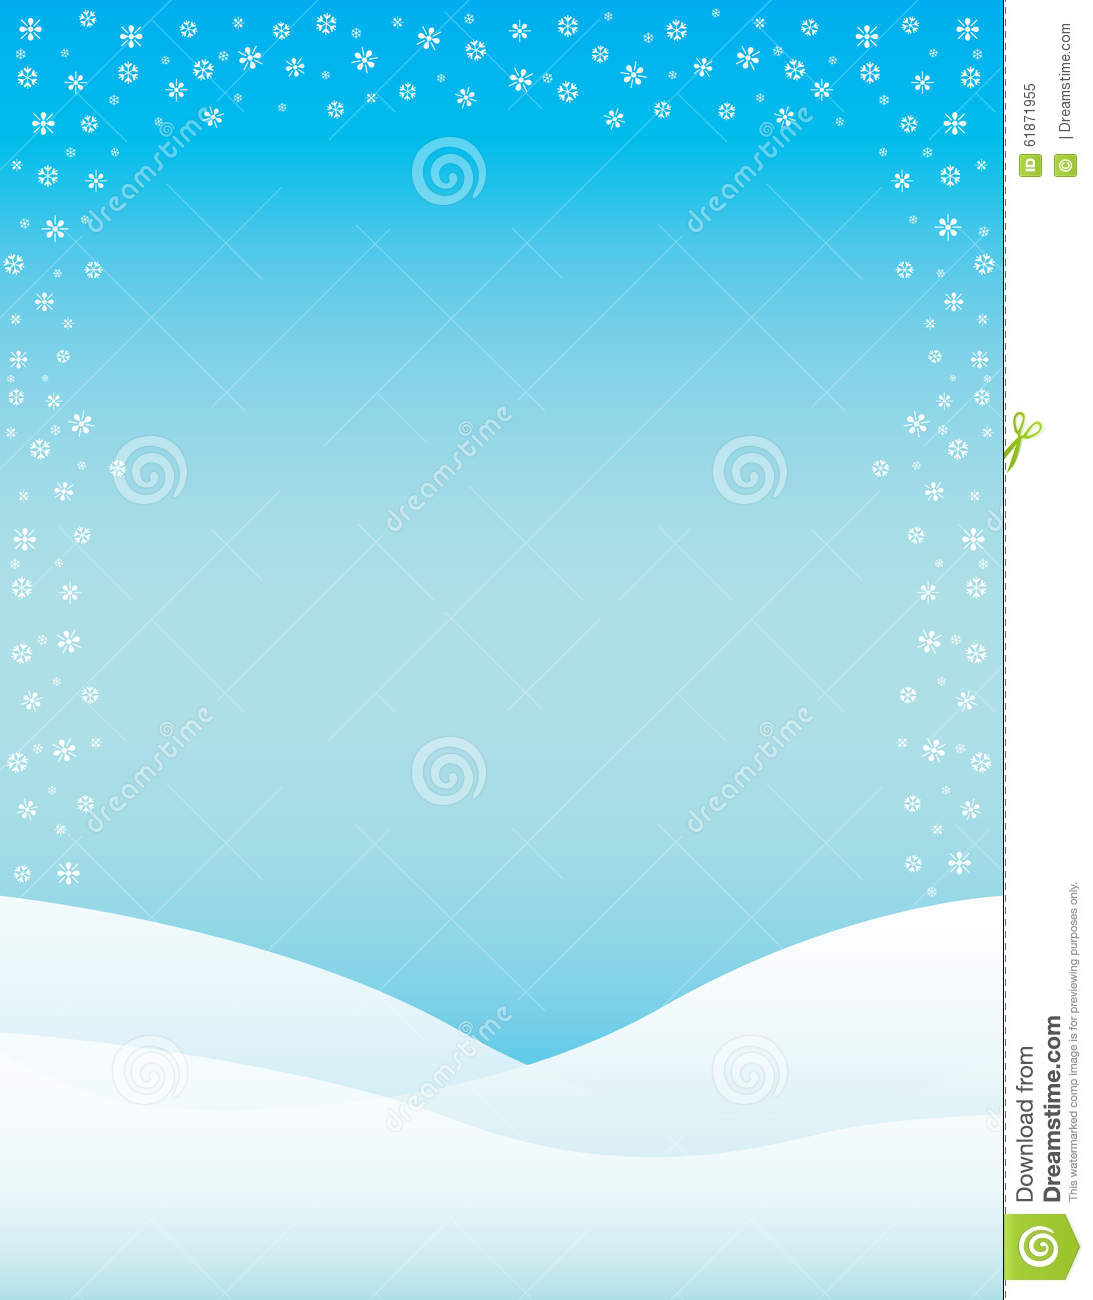 brochure background templates - winter brochure background stock illustration image of